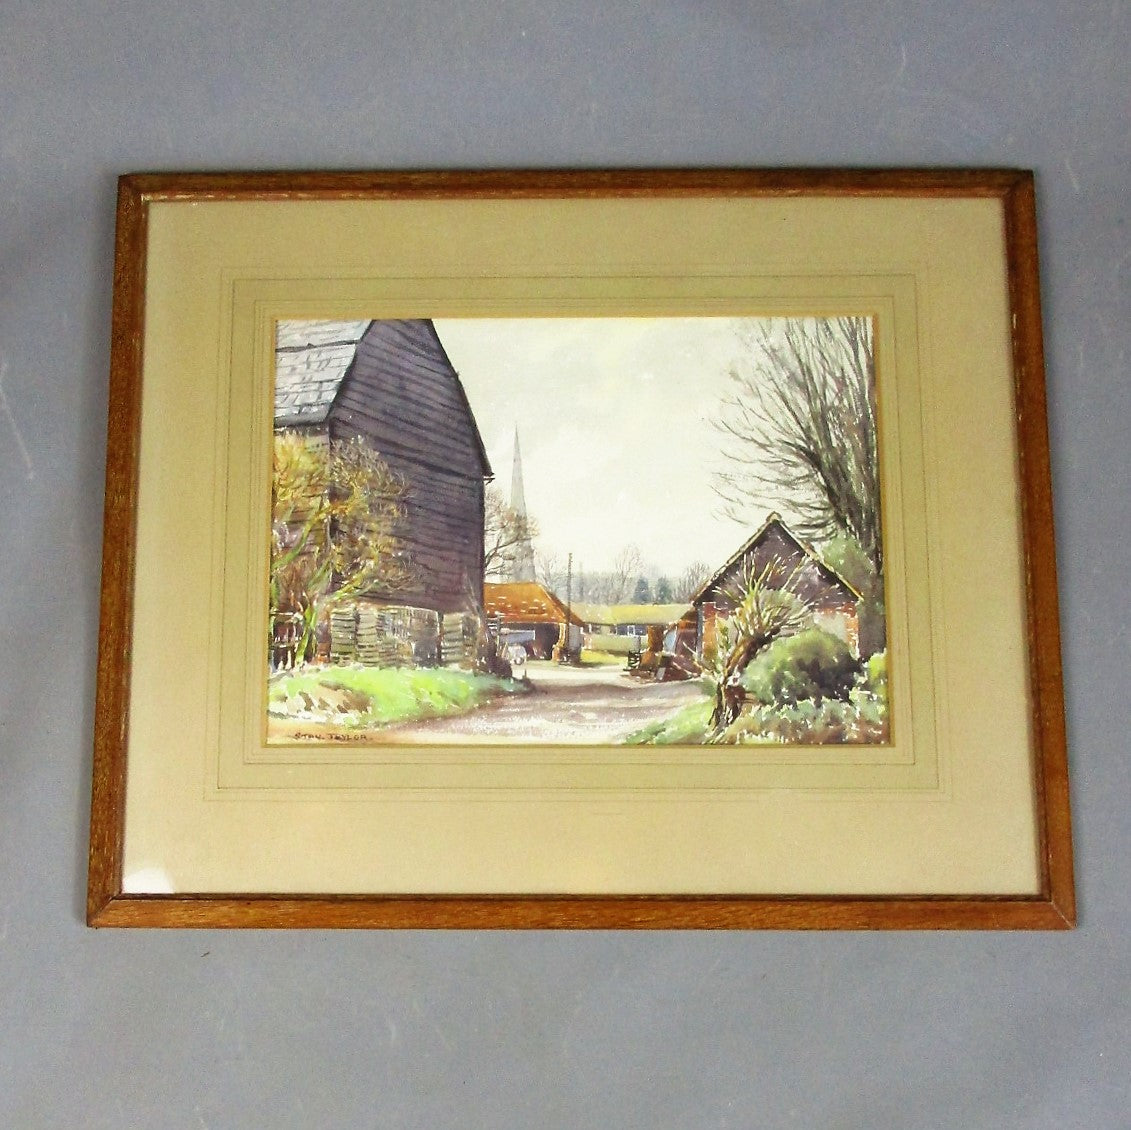 Larger Framed Watercolour of a Farm Vintage c1960